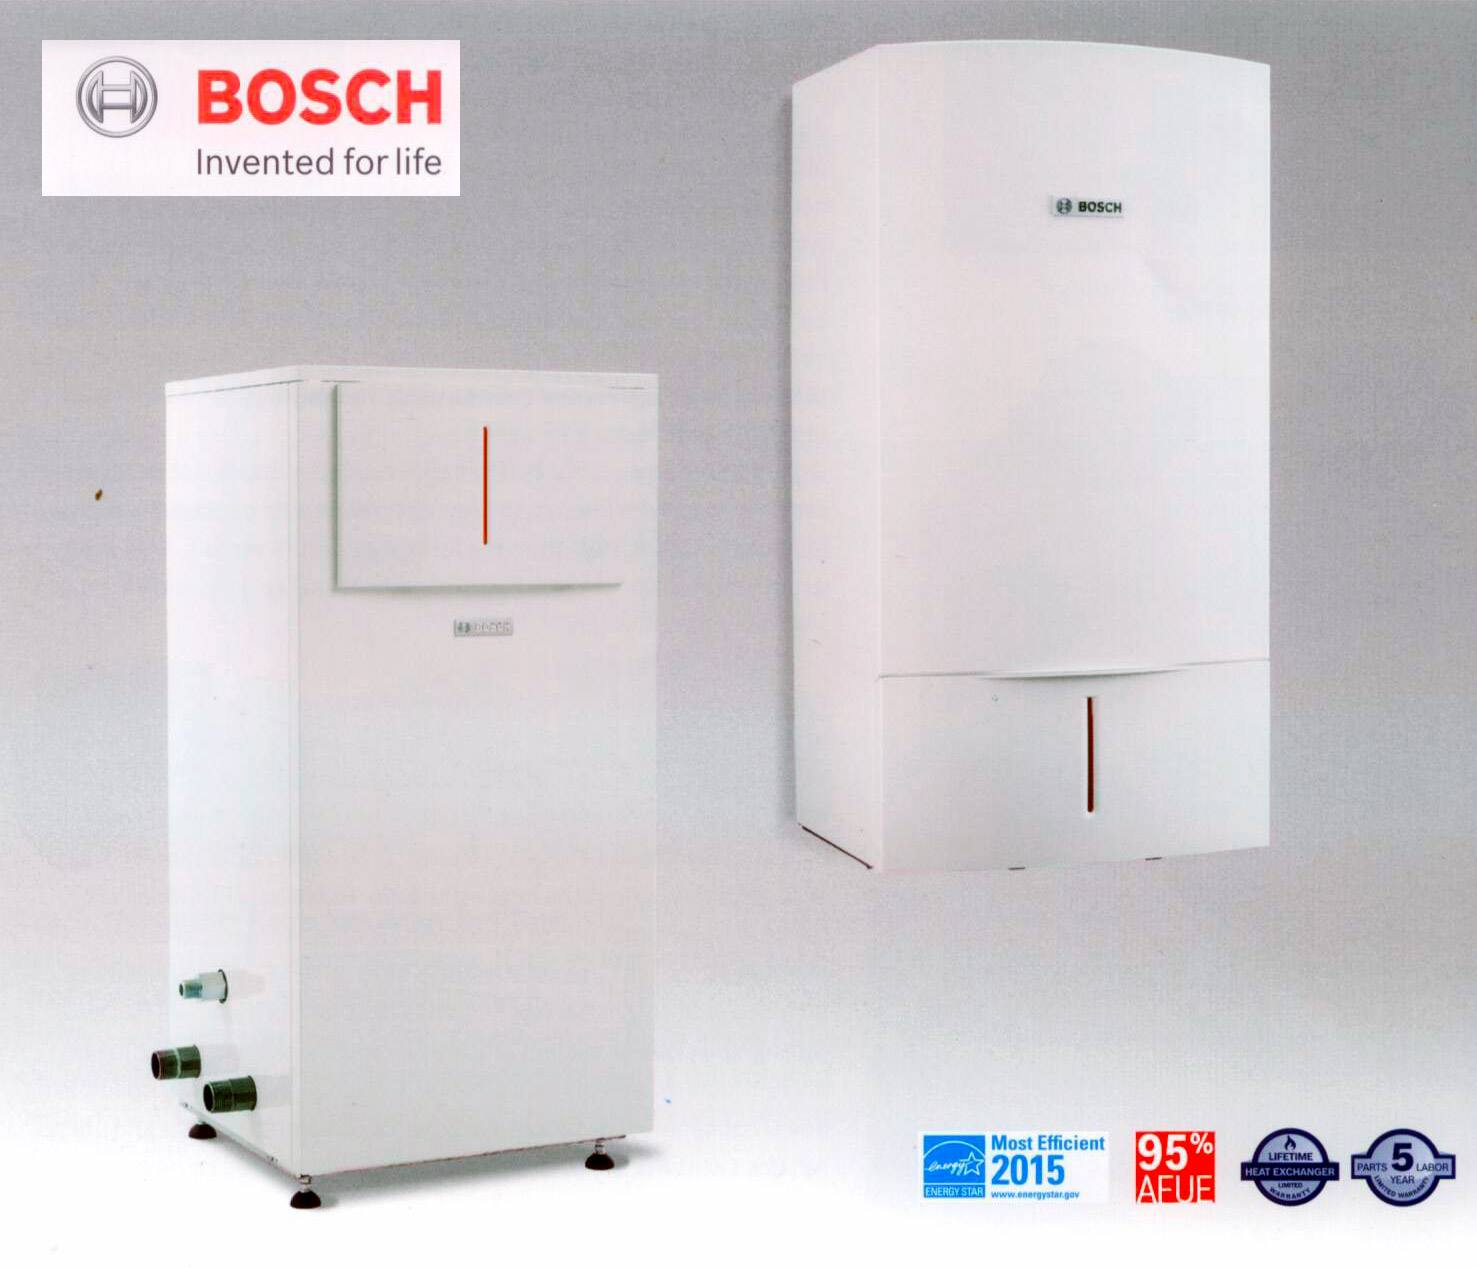 Bosch residential water heating boilers